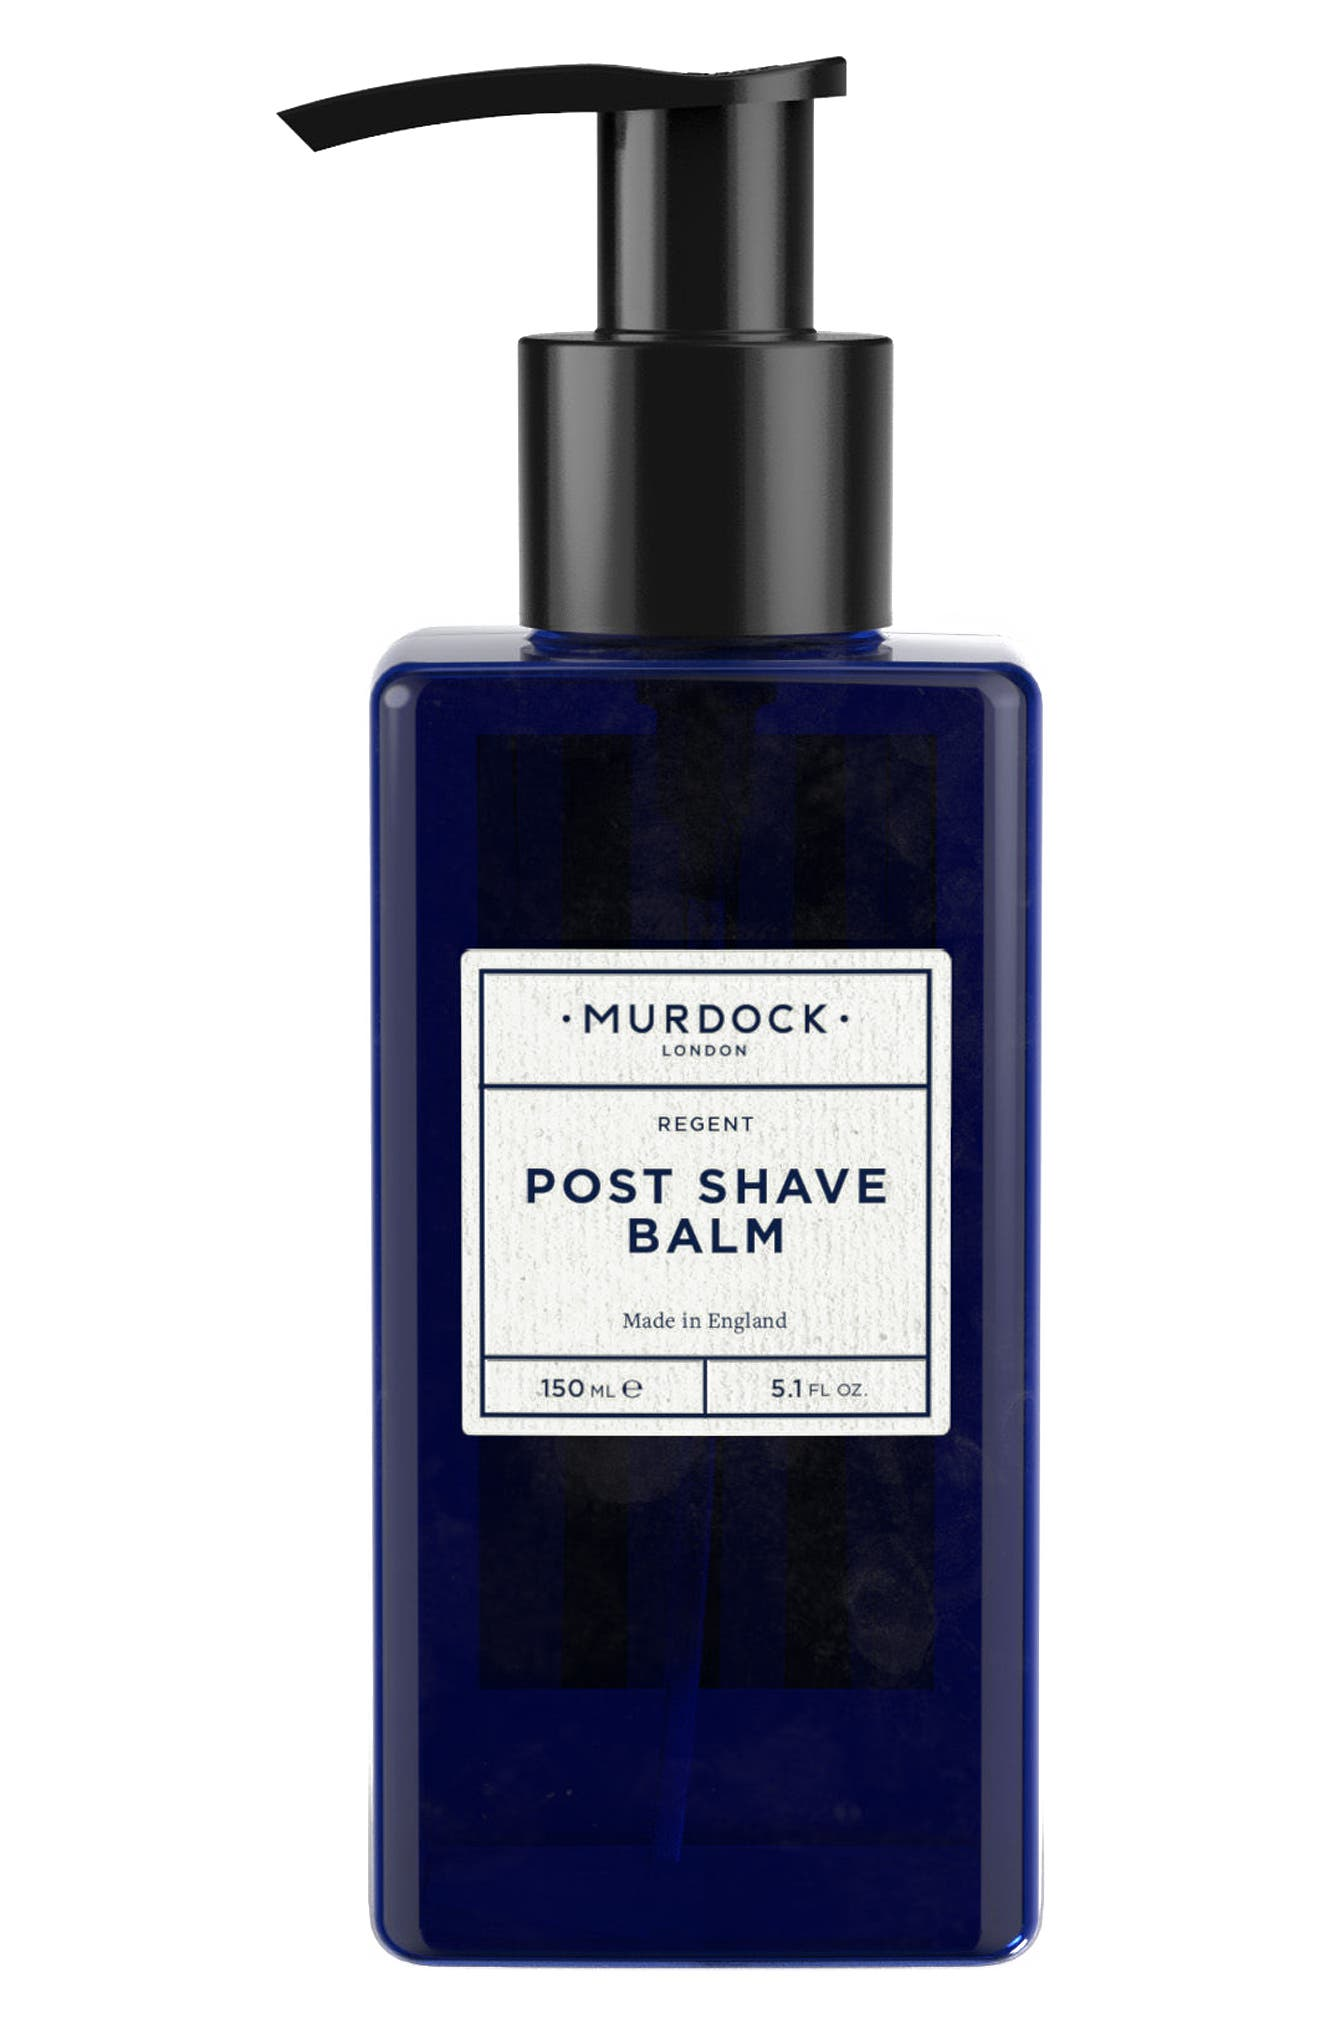 MURDOCK LONDON Home Accessories 150Ml Post-Shave Balm in Z